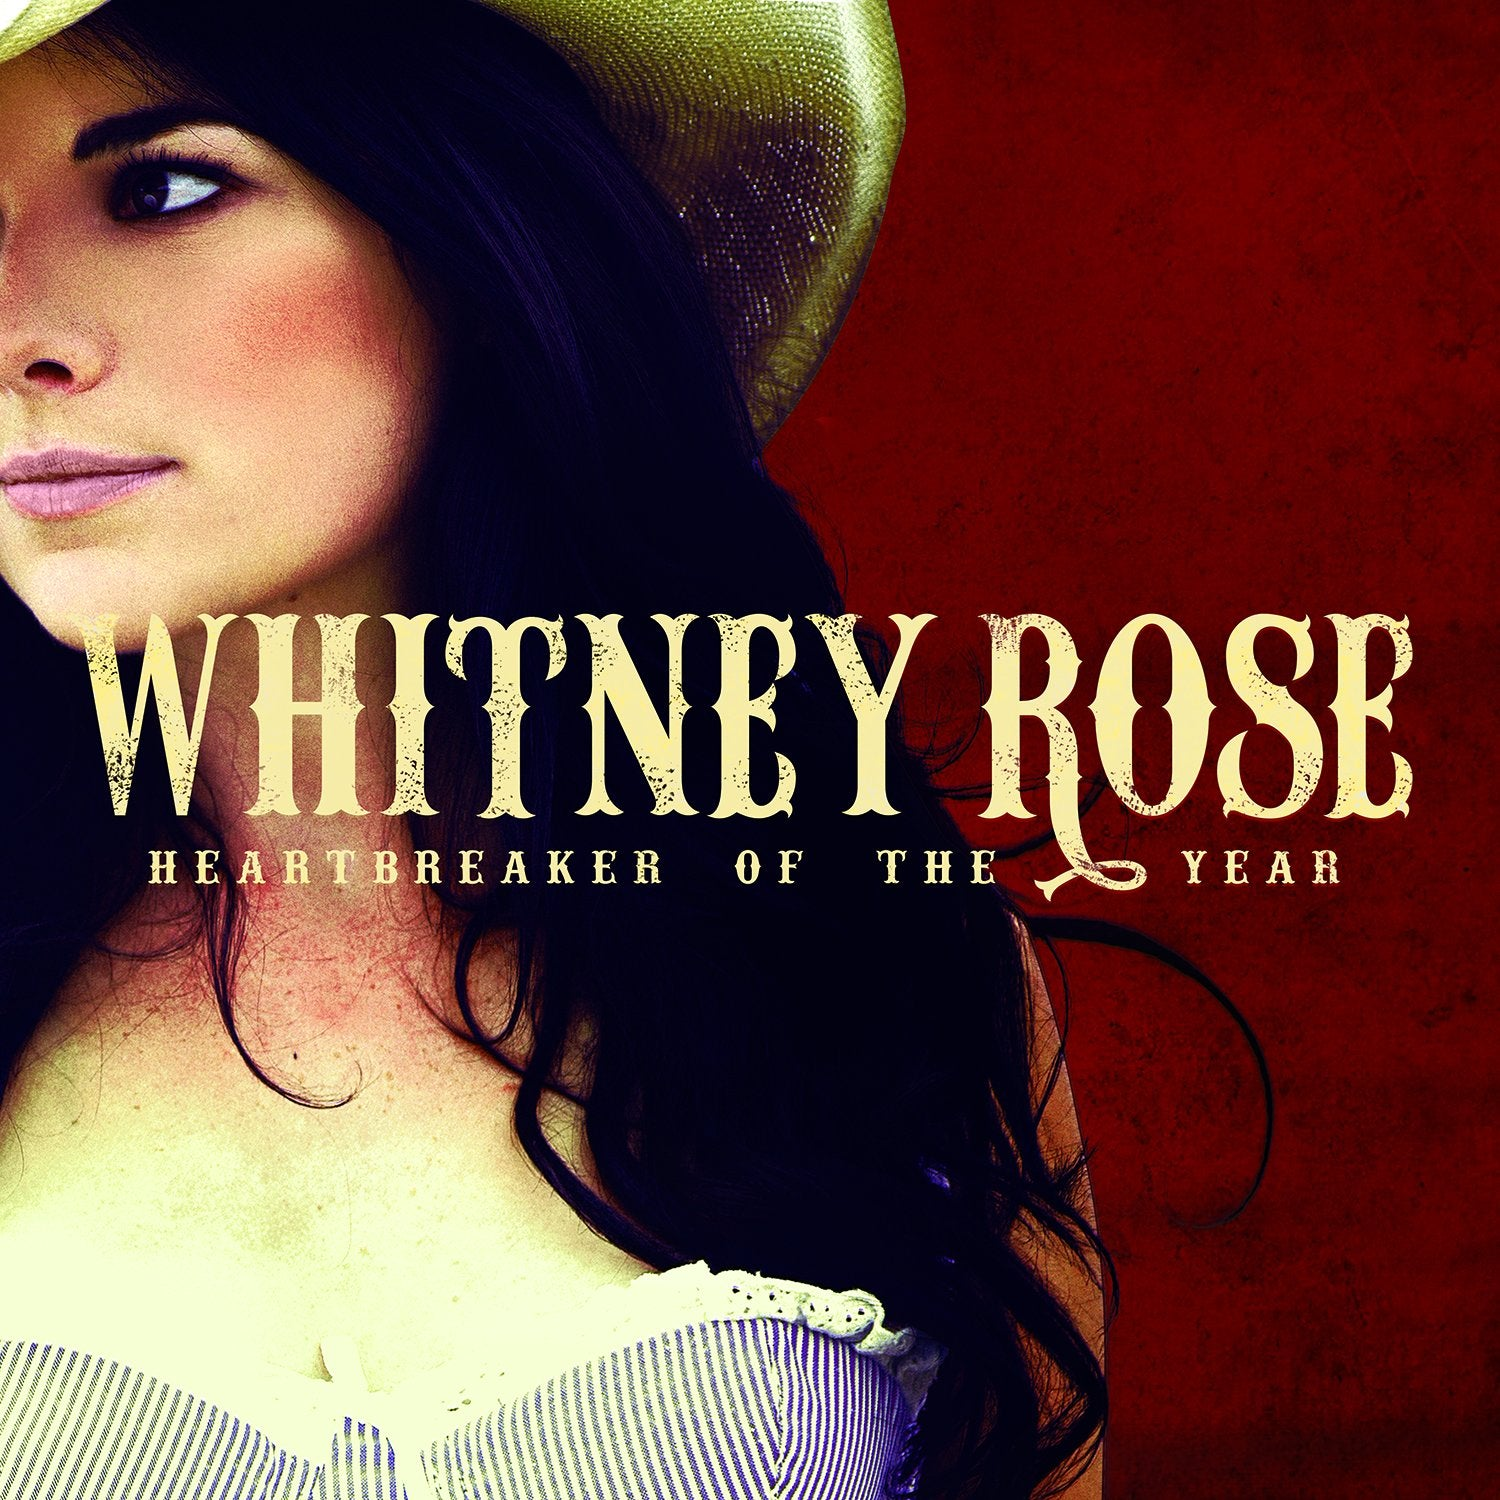 Heartbreaker of the Year [Audio CD] ROSE, WHITNEY